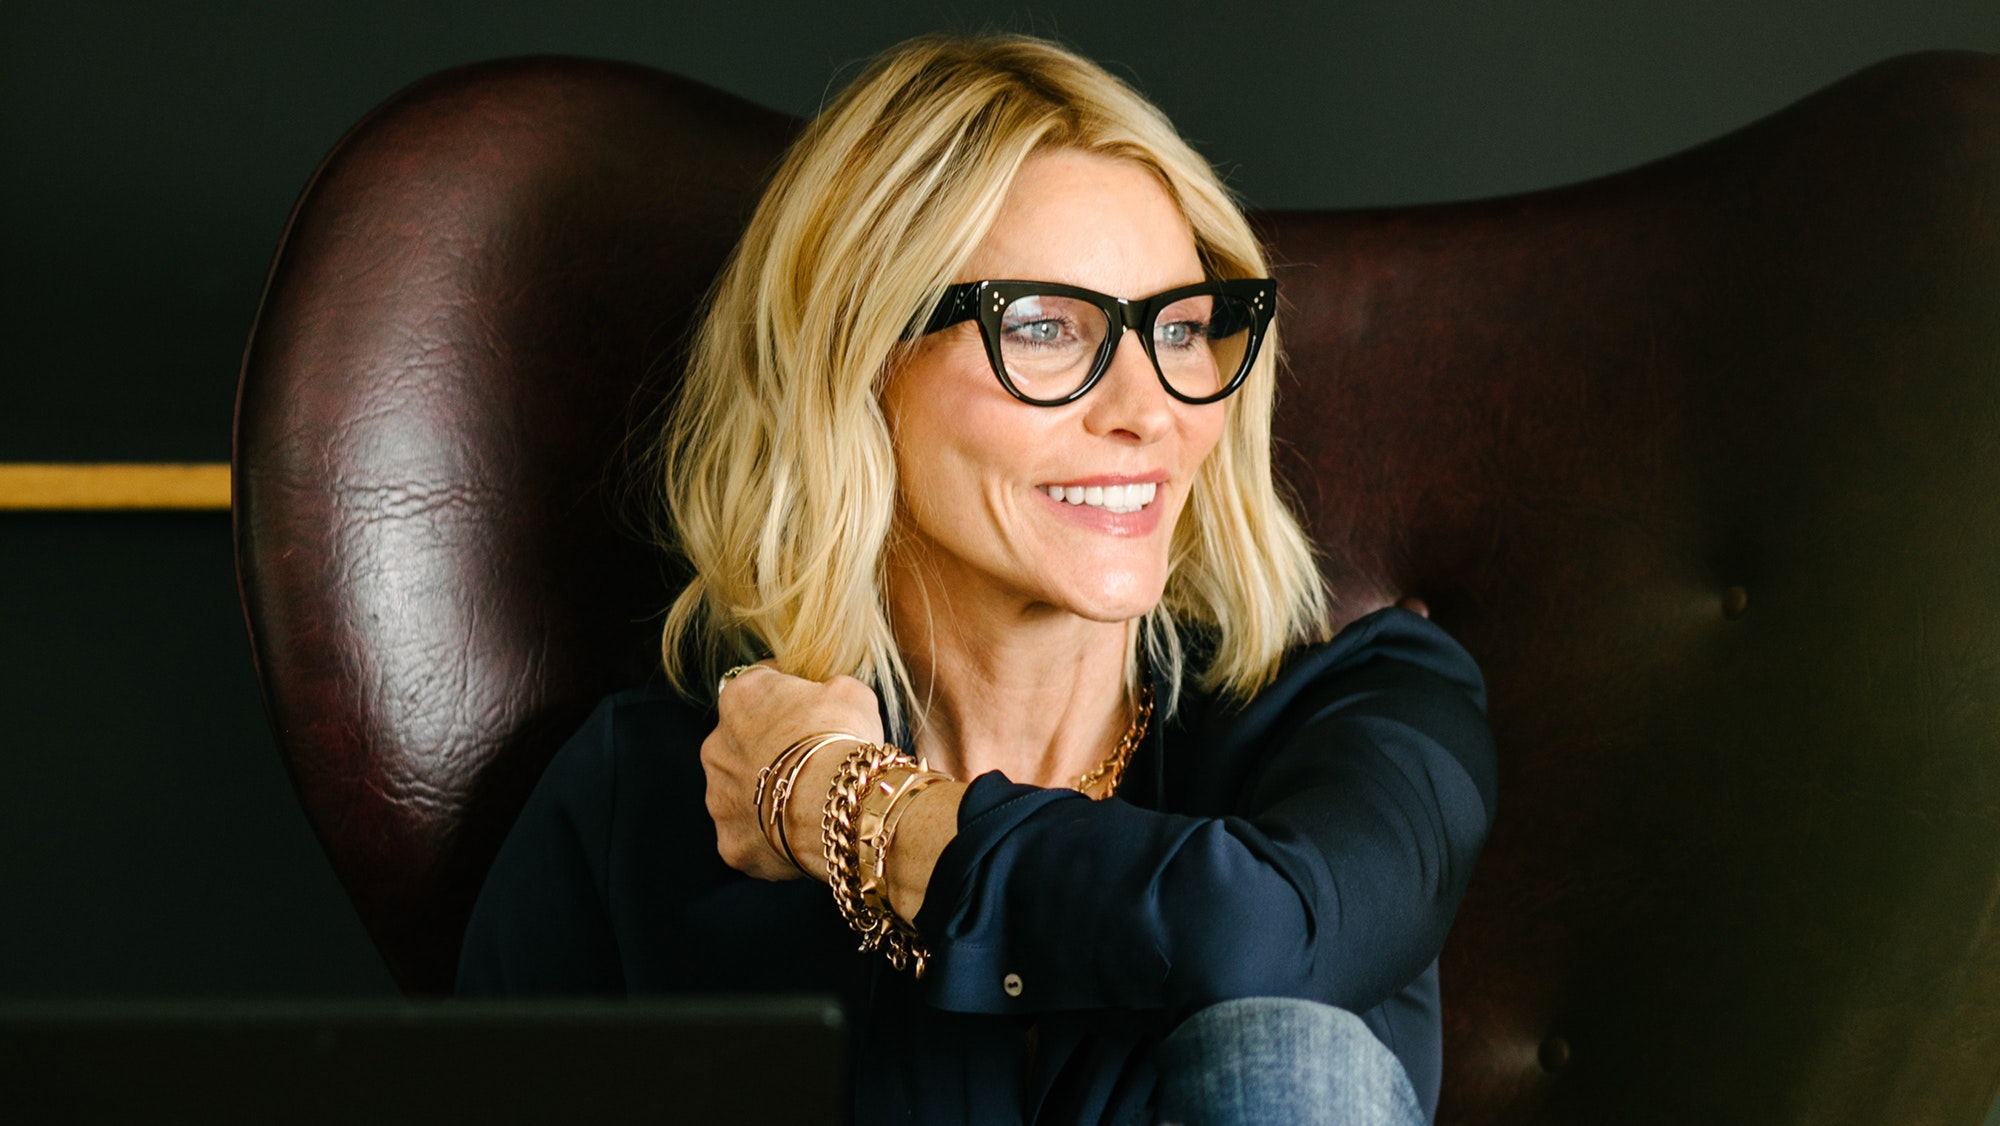 Jillian Dempsey on Hair, Makeup, and the Instagram-Famous Gold Bar Everyone Is Buzzing About